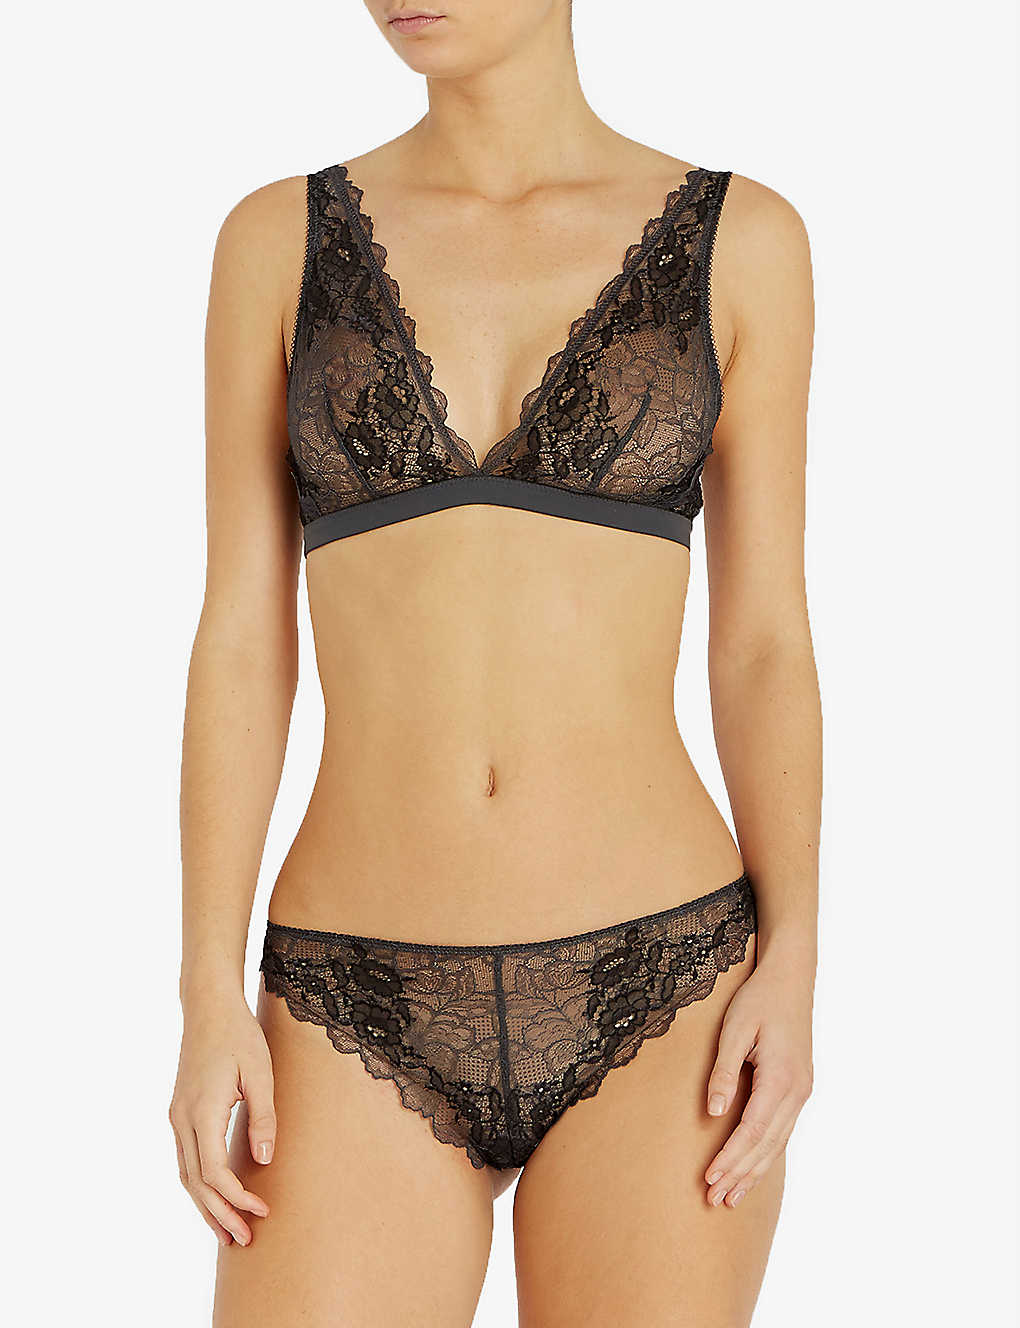 WACOAL: Lace Perfection stretch-lace bralette